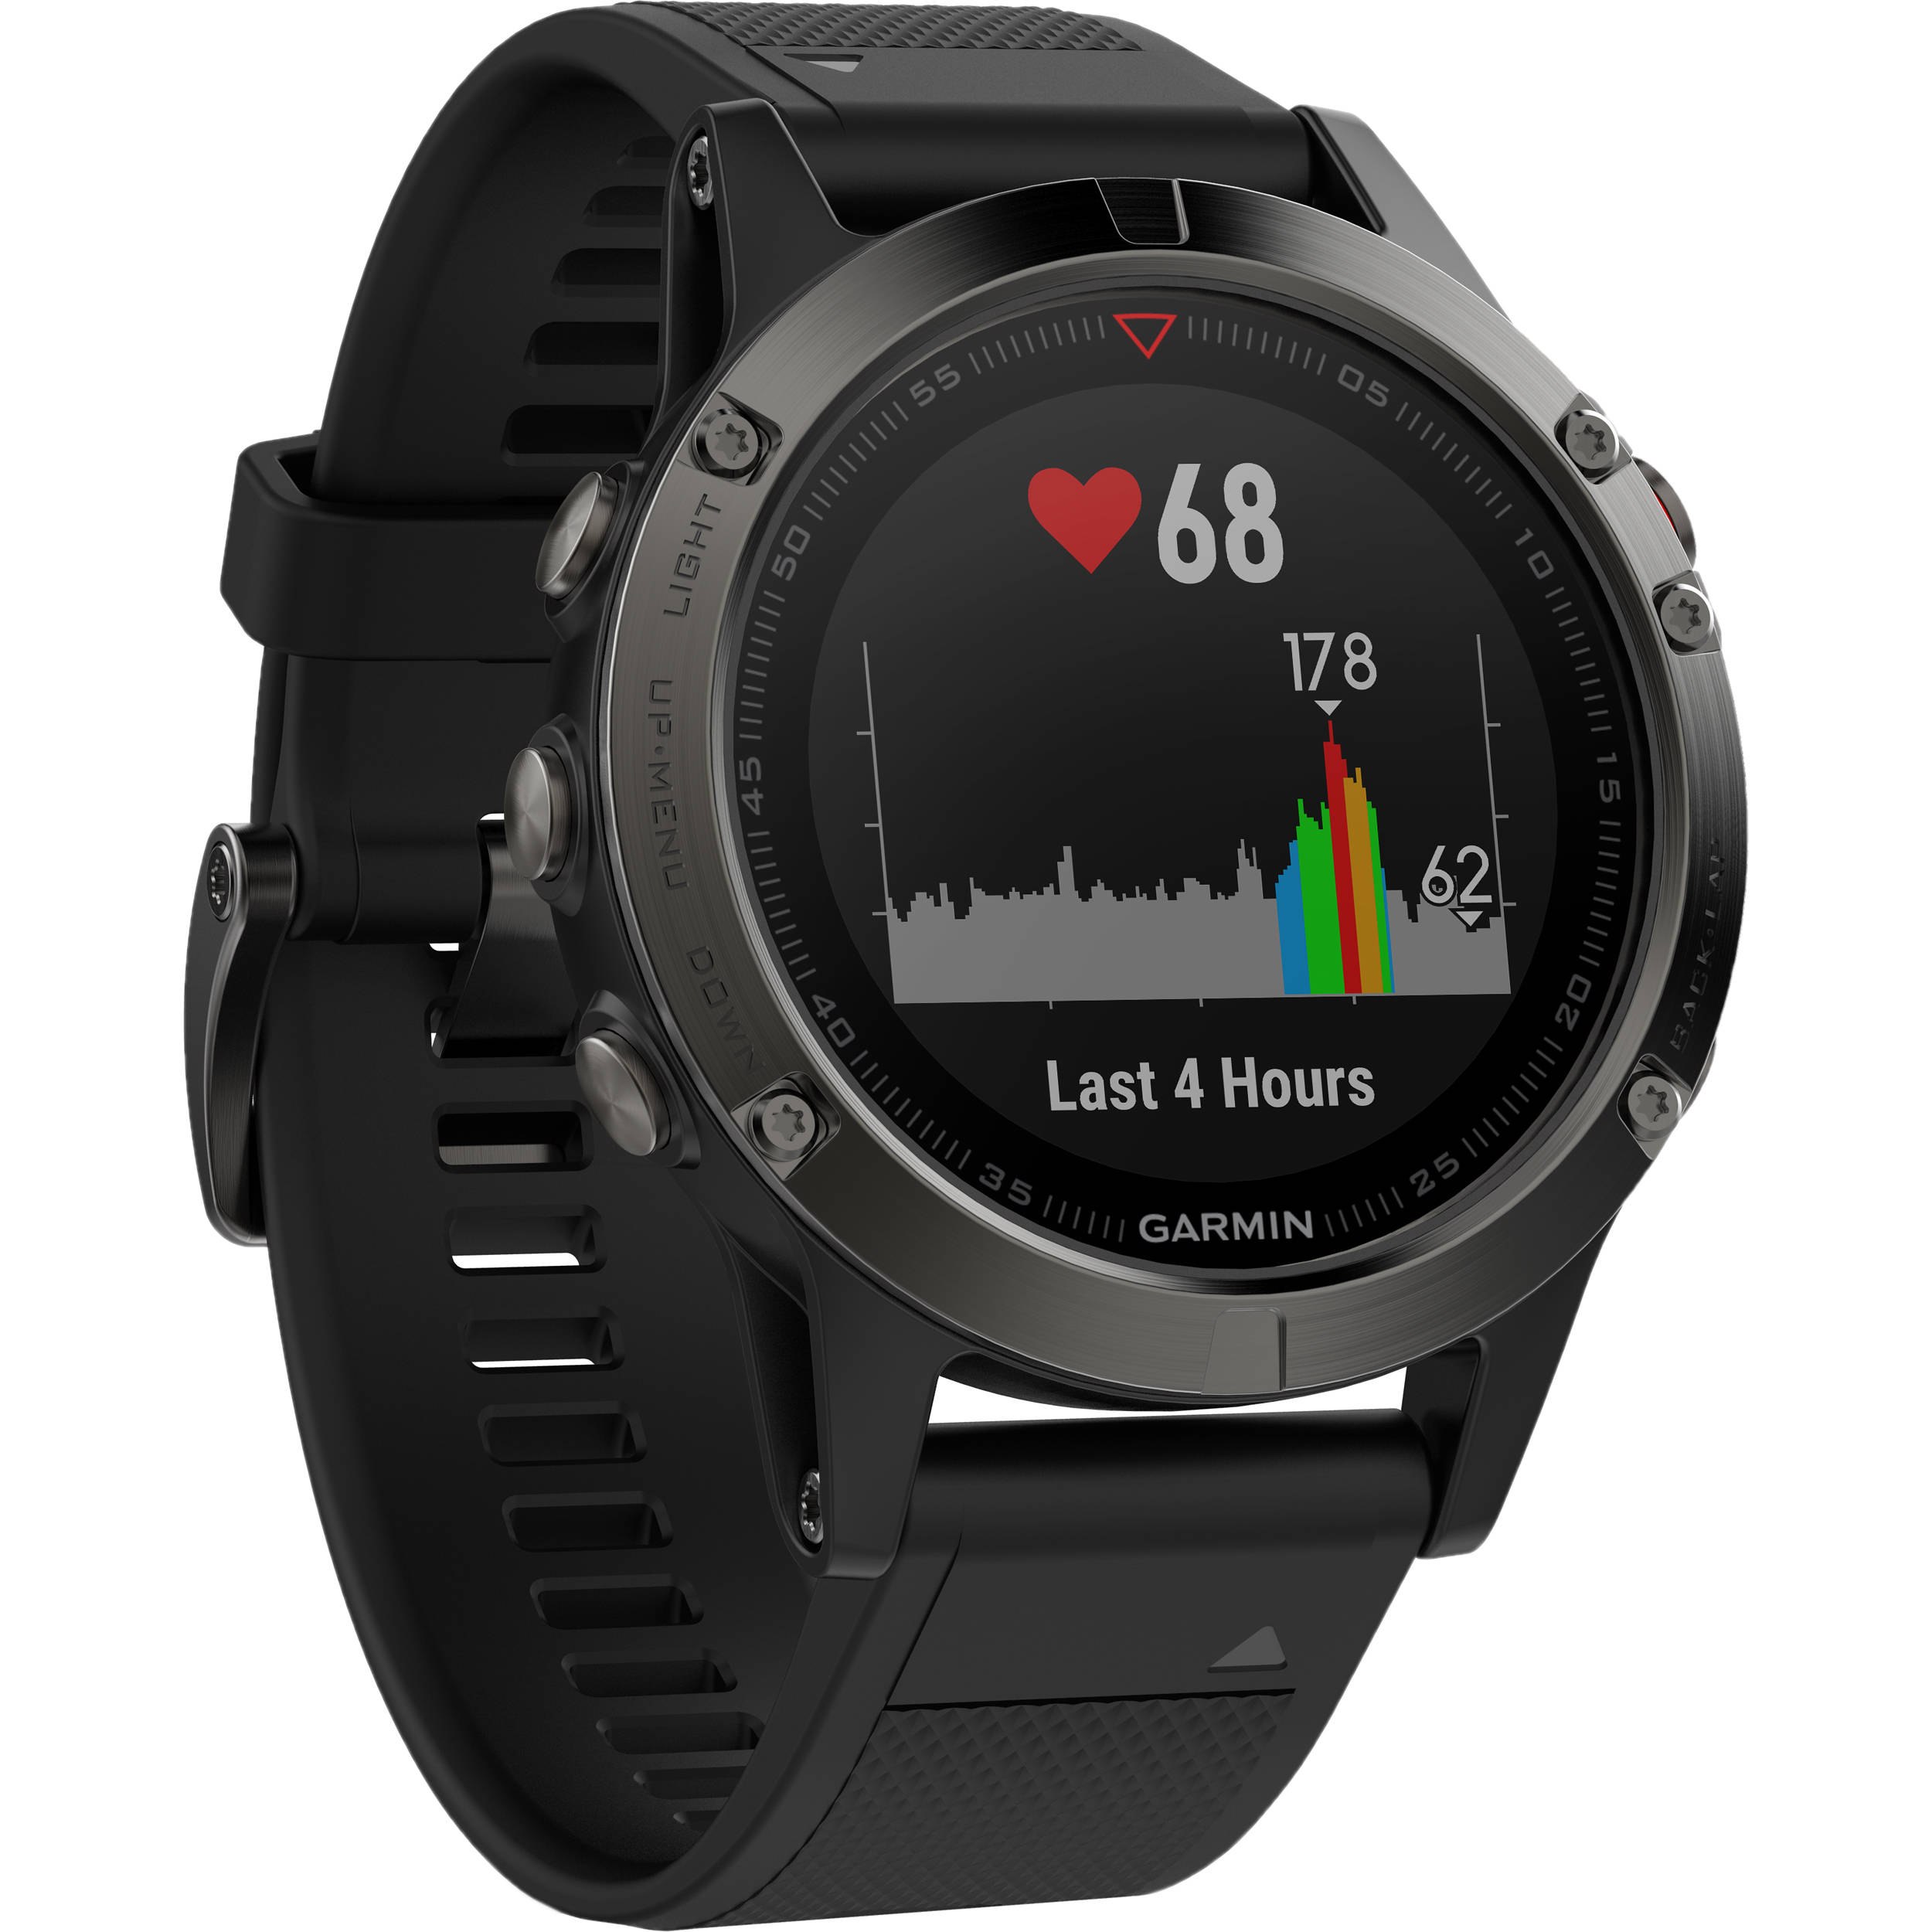 Garmin fenix 5 Multi-Sport Training GPS Watch 010-01688-00 B&H